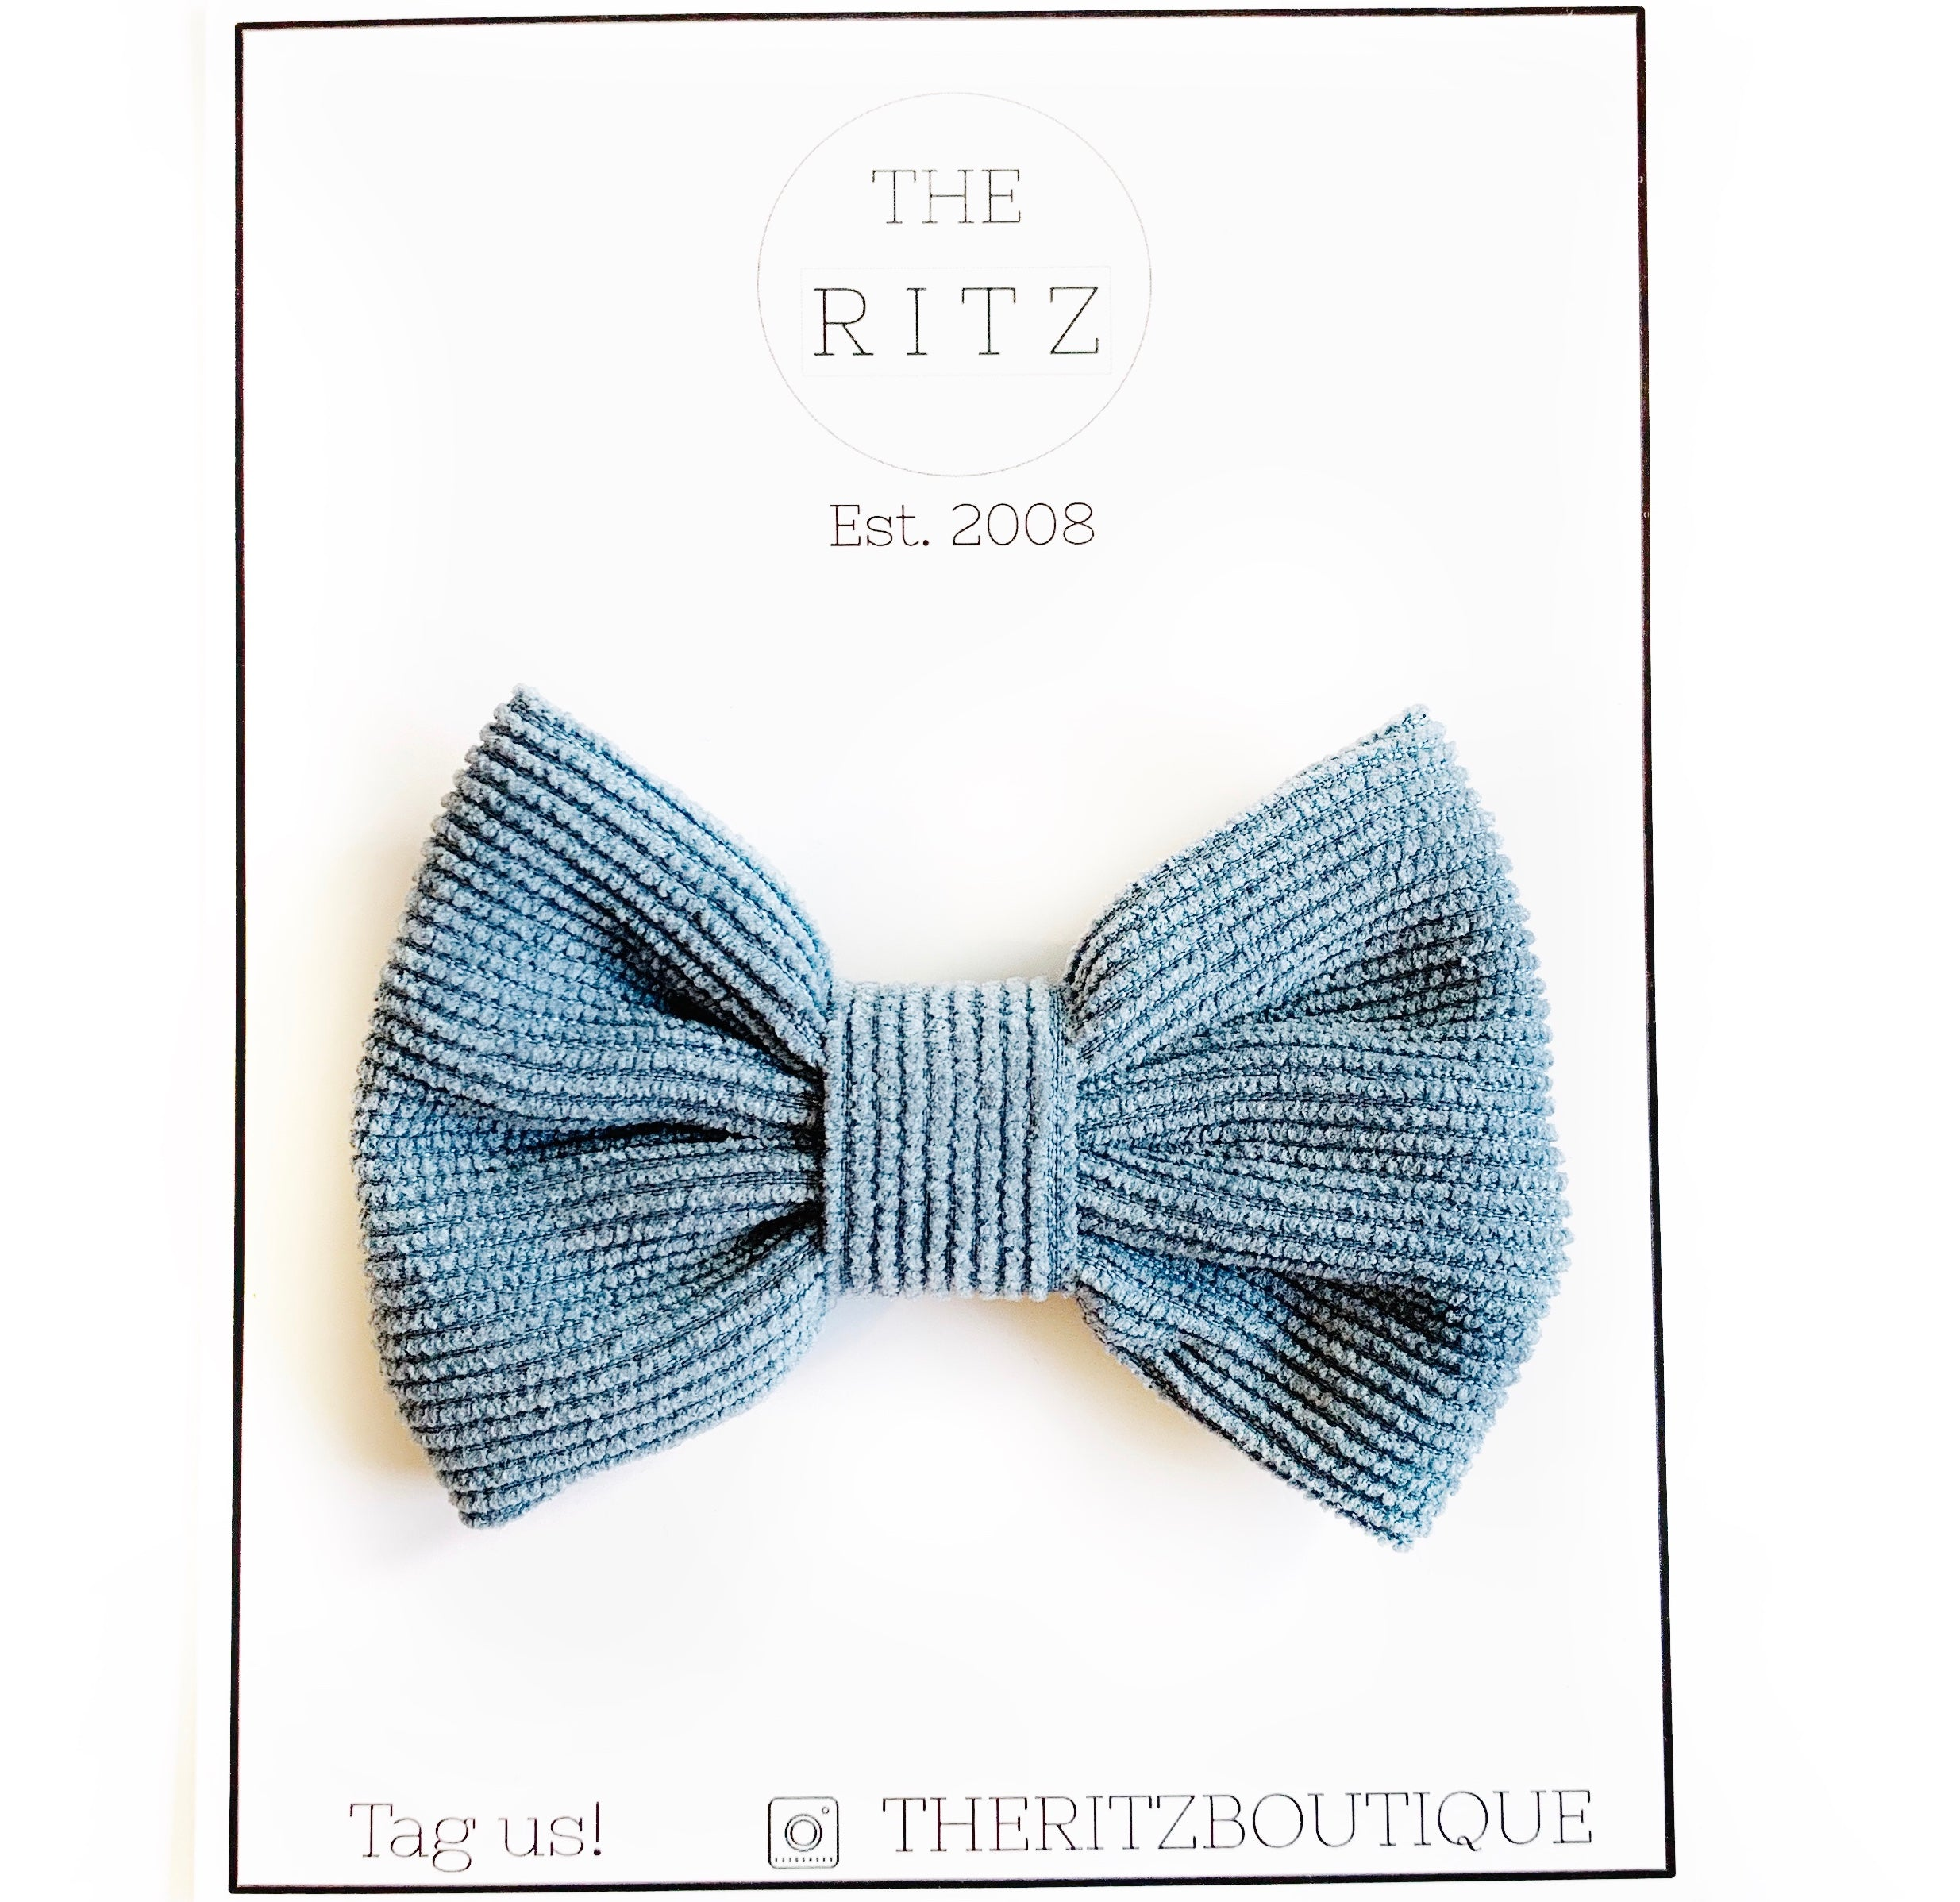 Dusty Blue Corduroy Bow-tie Midi Bow